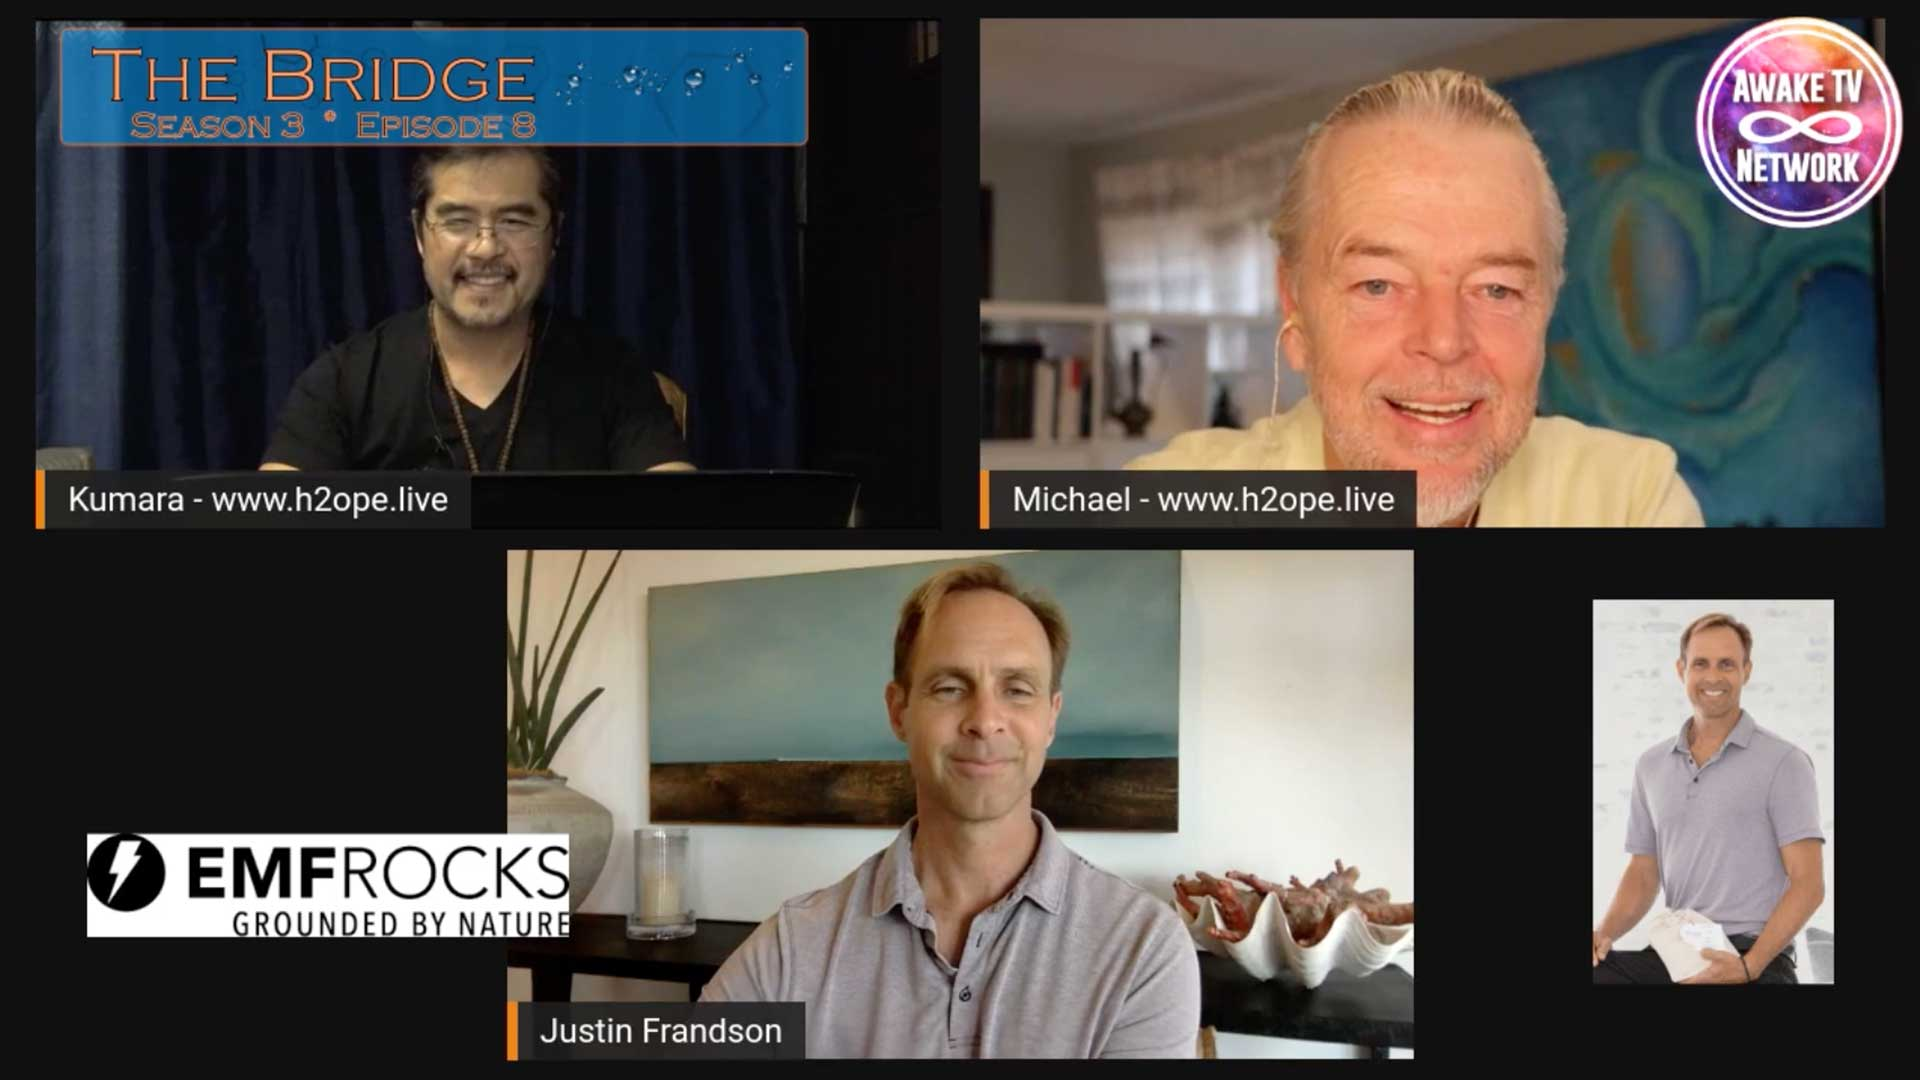 The Bridge Podcast - Awake TV Network with Guest Justin Frandson